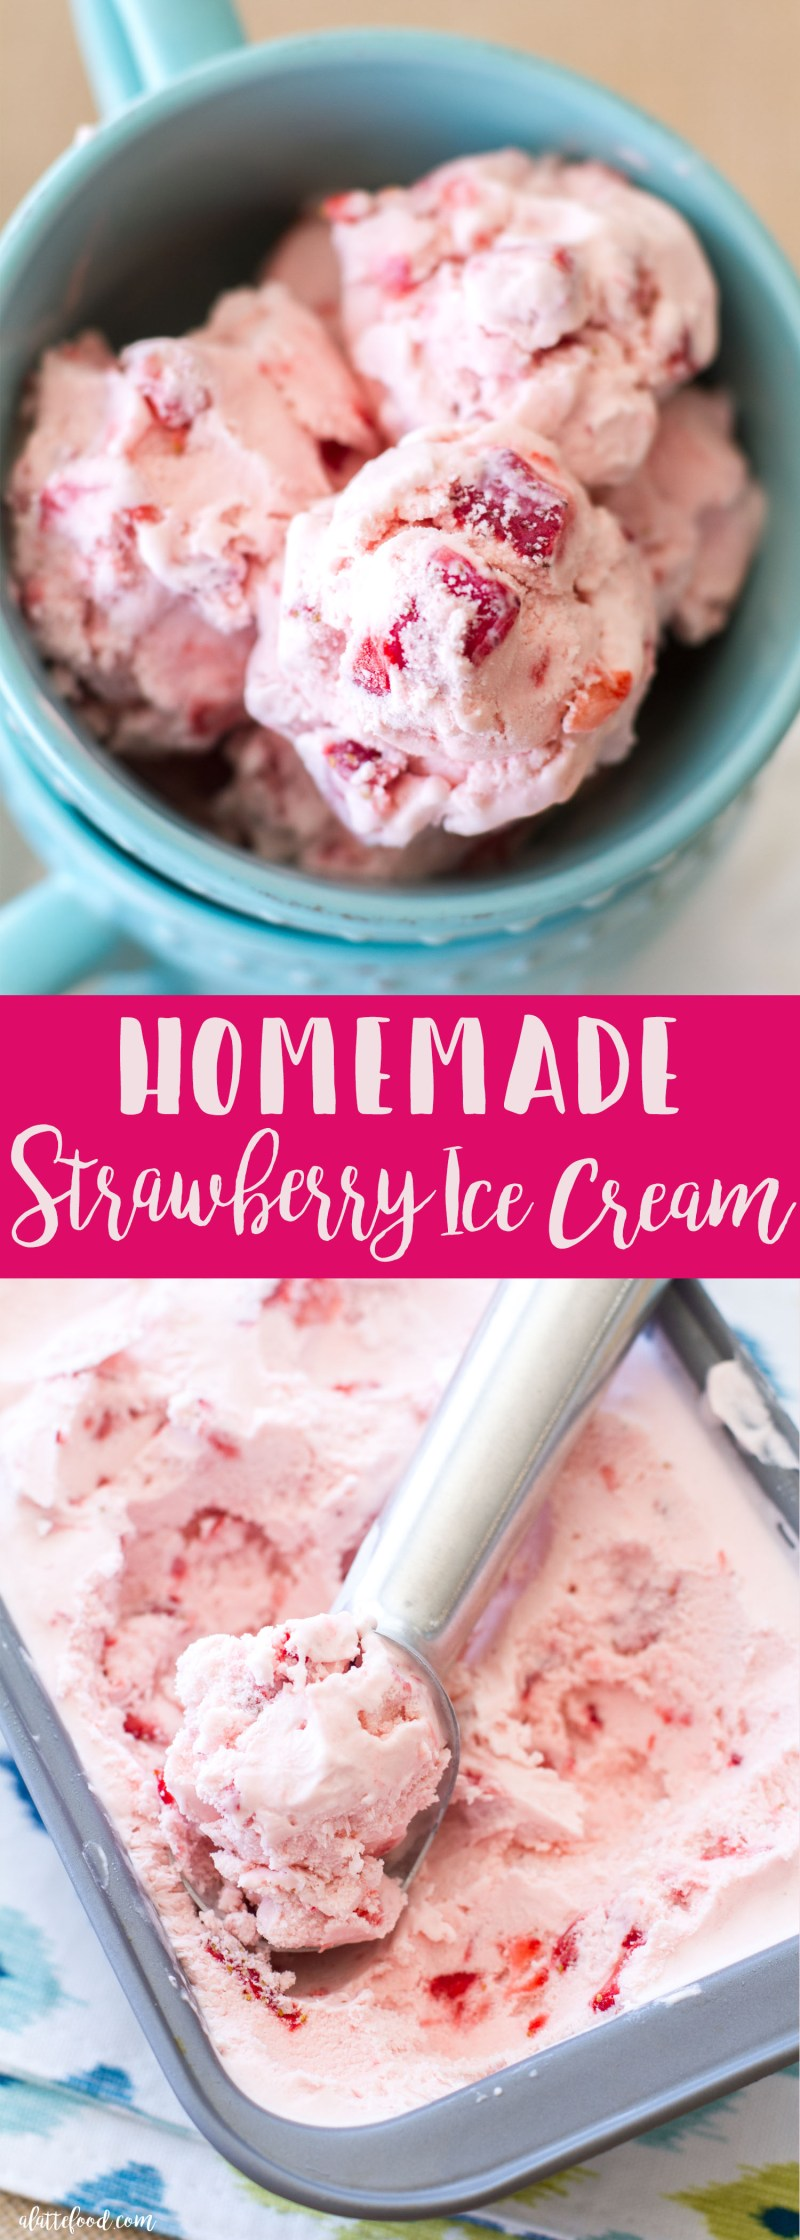 This Homemade Strawberry Ice Cream is creamy, dreamy, and made with fresh strawberries. It is so delicious and is the perfect summer ice cream! strawberry, ice cream, strawberry ice cream